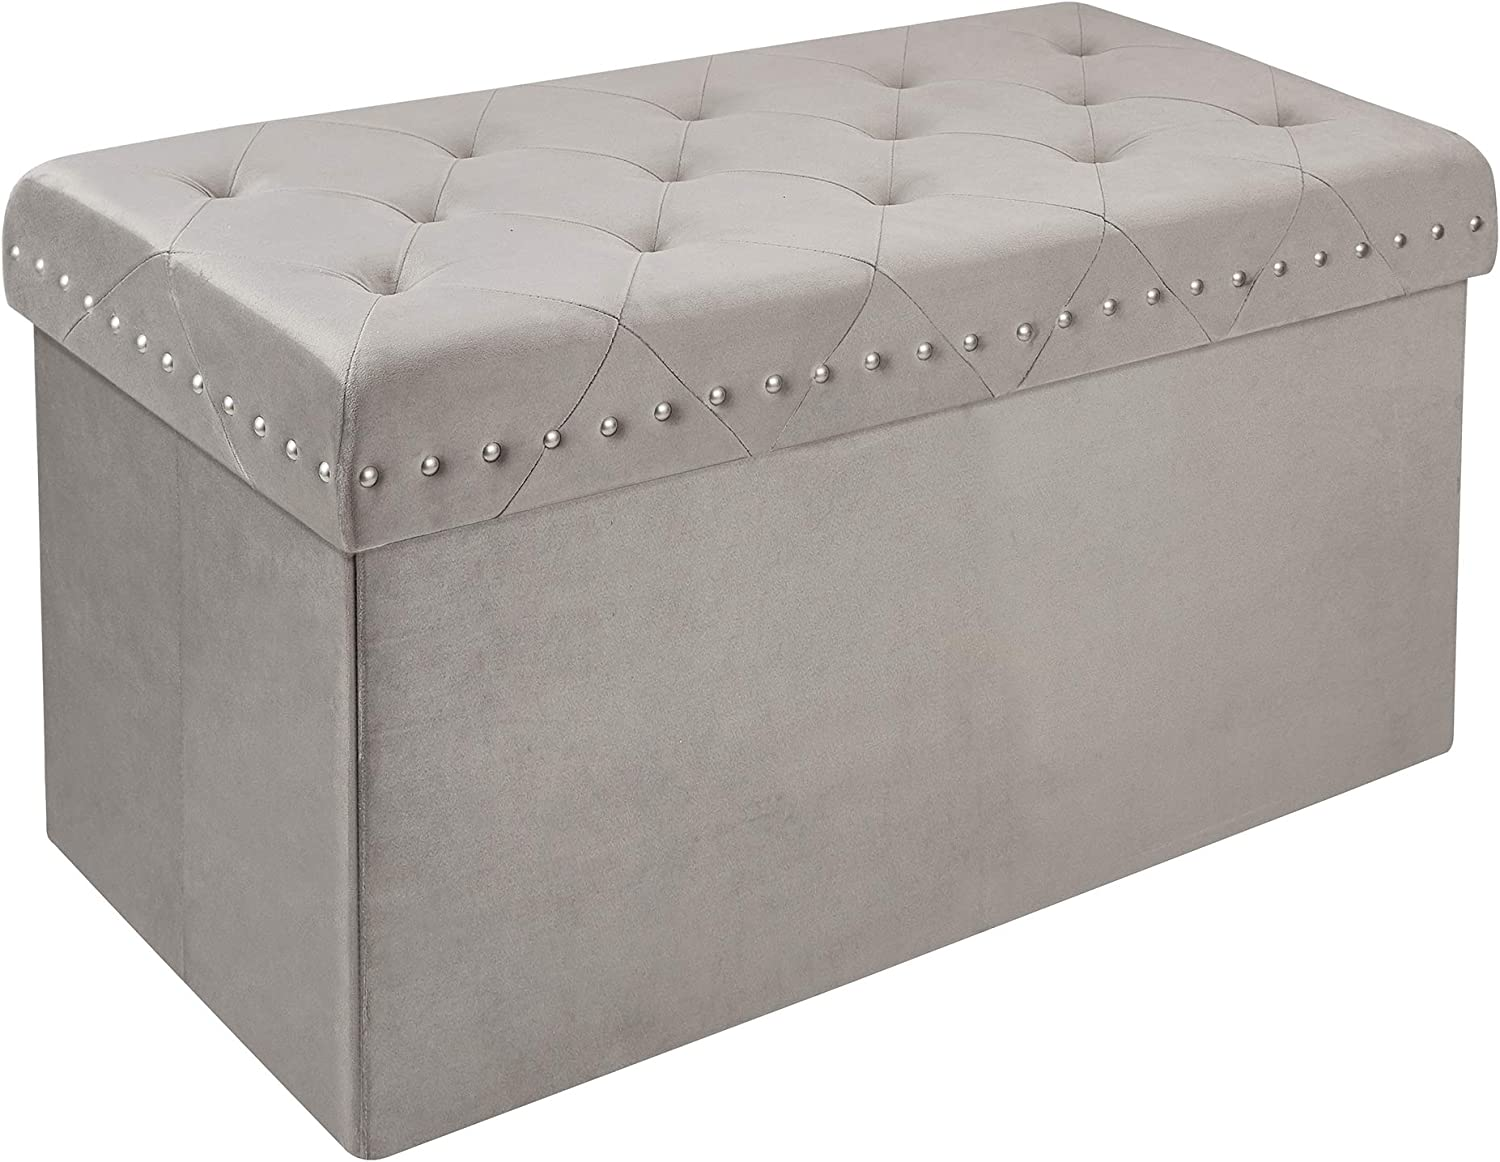 Inspire Me! Home Décor Anastasia Ottoman Bench with Lux Metal Studs Detailing, Classy Pewter Grey Soft Velvet, 32 x 16 x 17 in, Gorgeous Tufted Design, Comfortable Seating, Hidden Storage (520260-013)